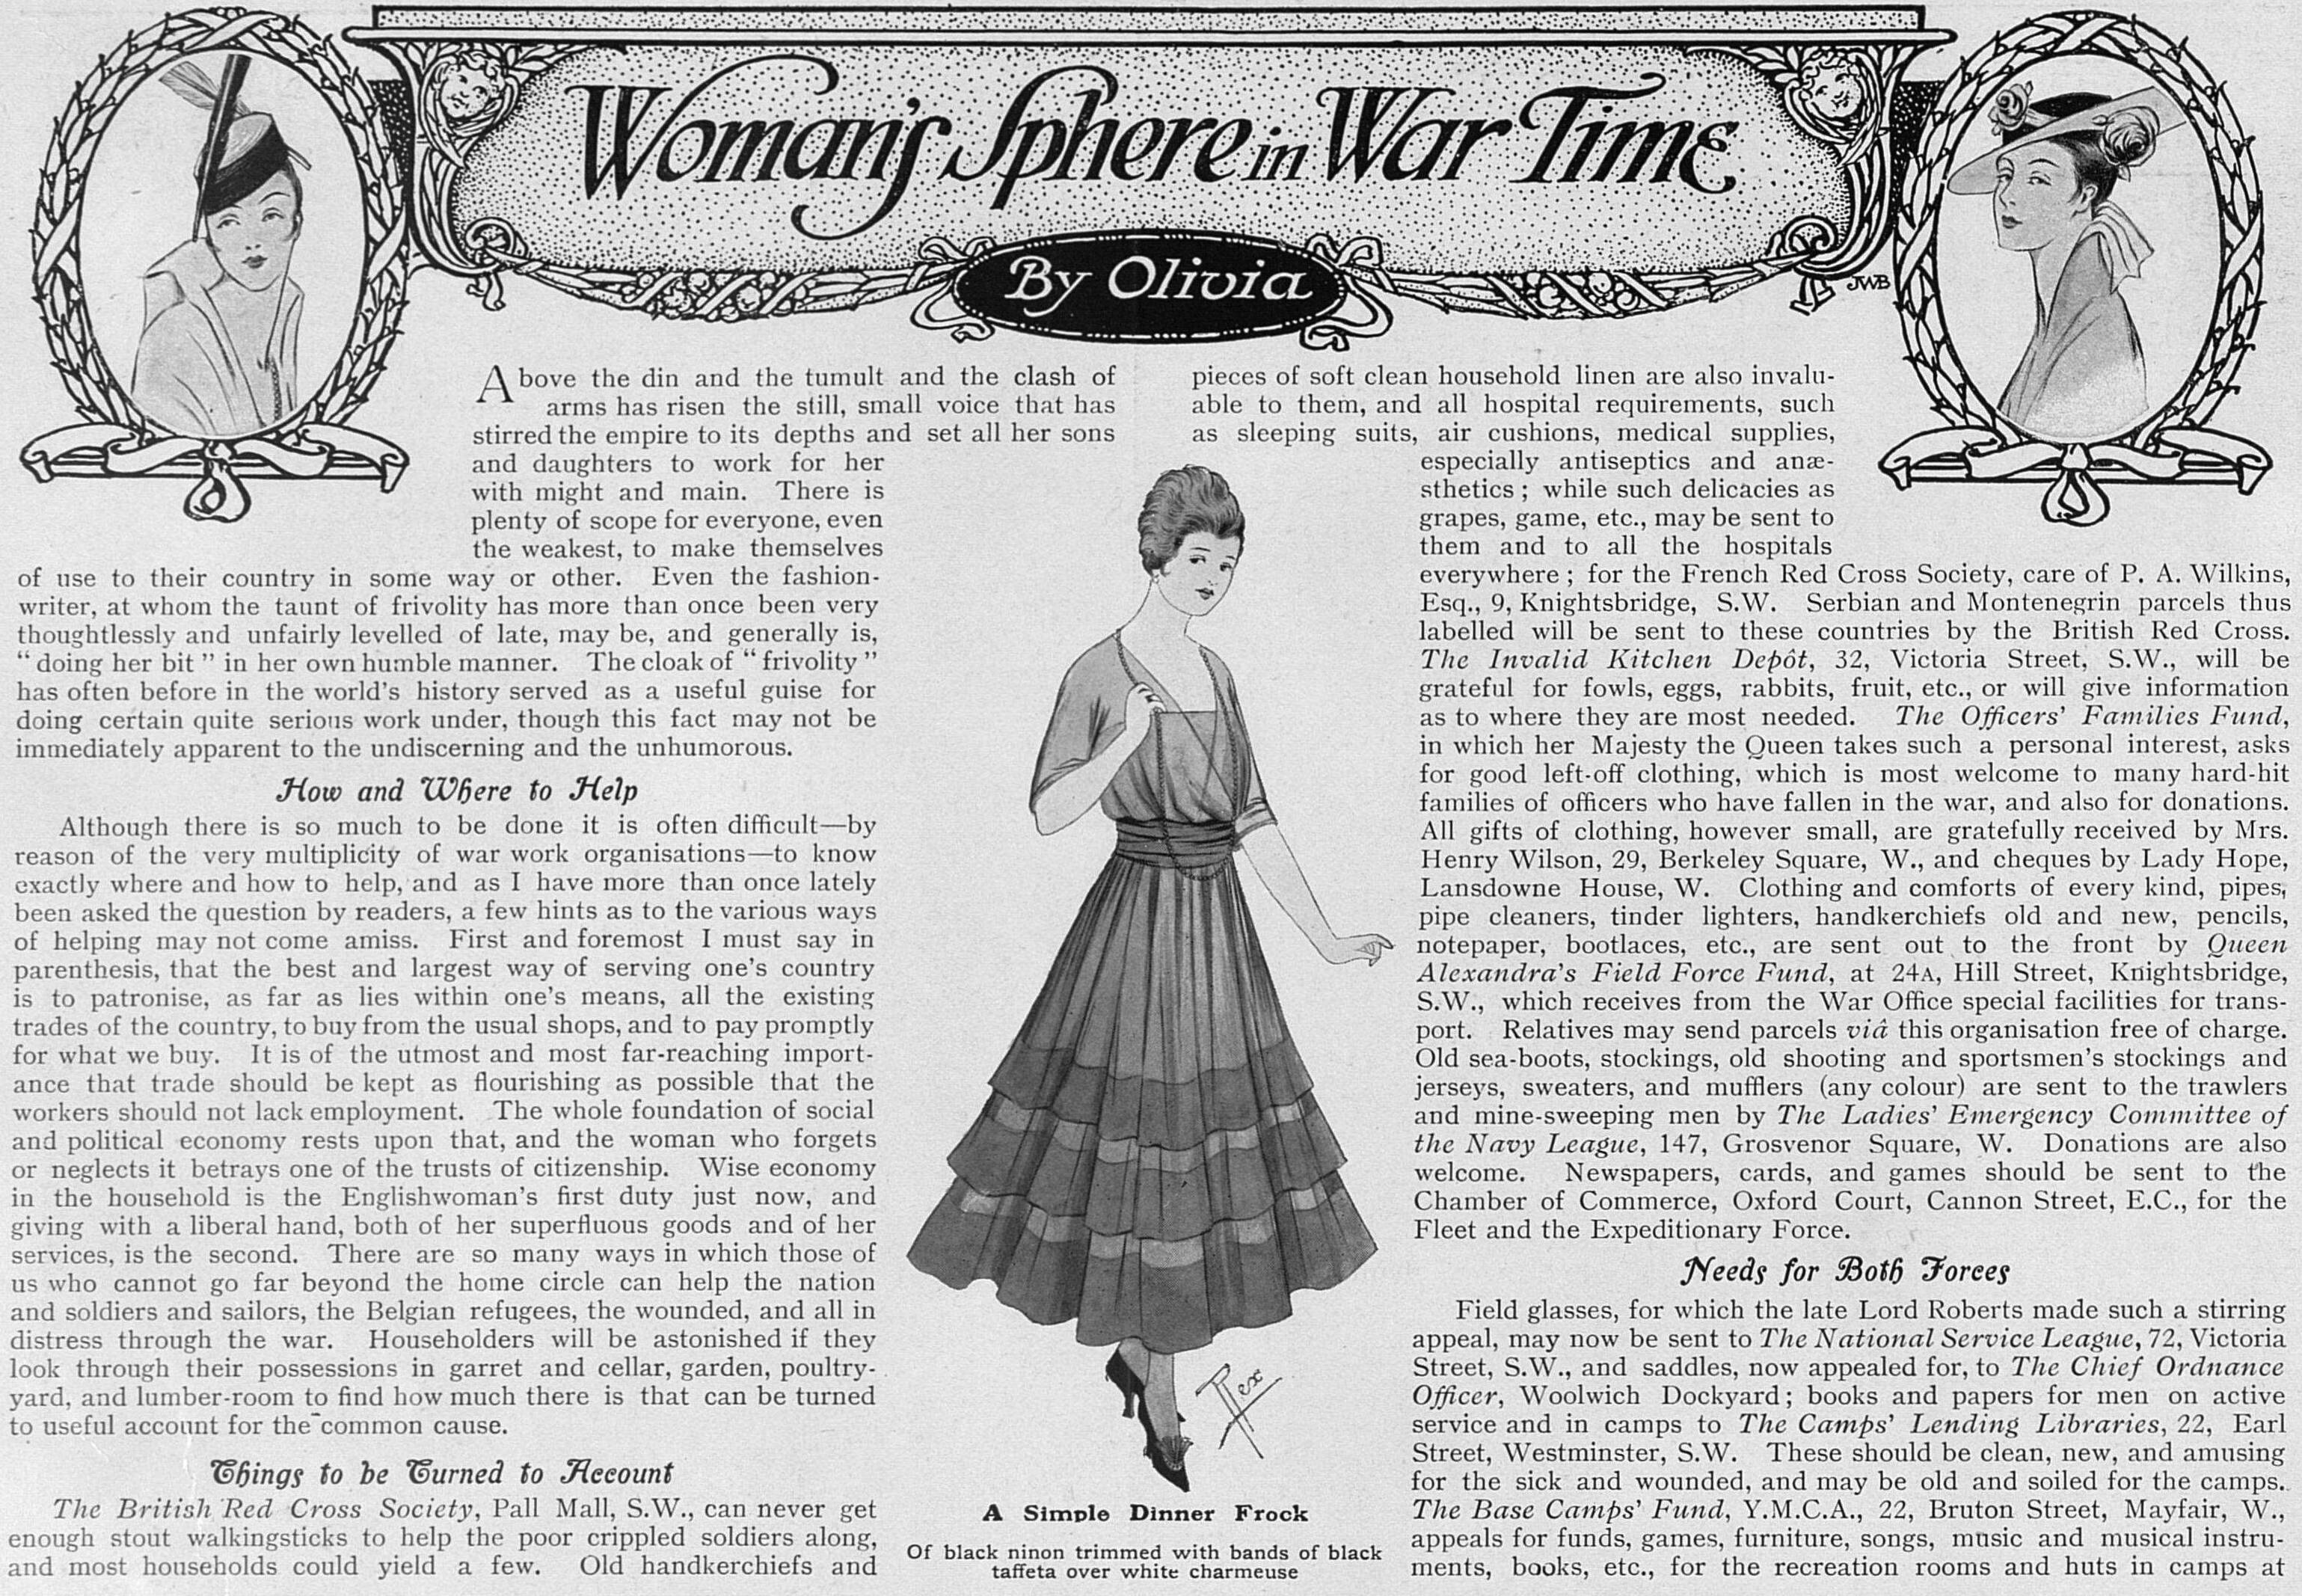 WomansSphereInWarTime_3Jul1915